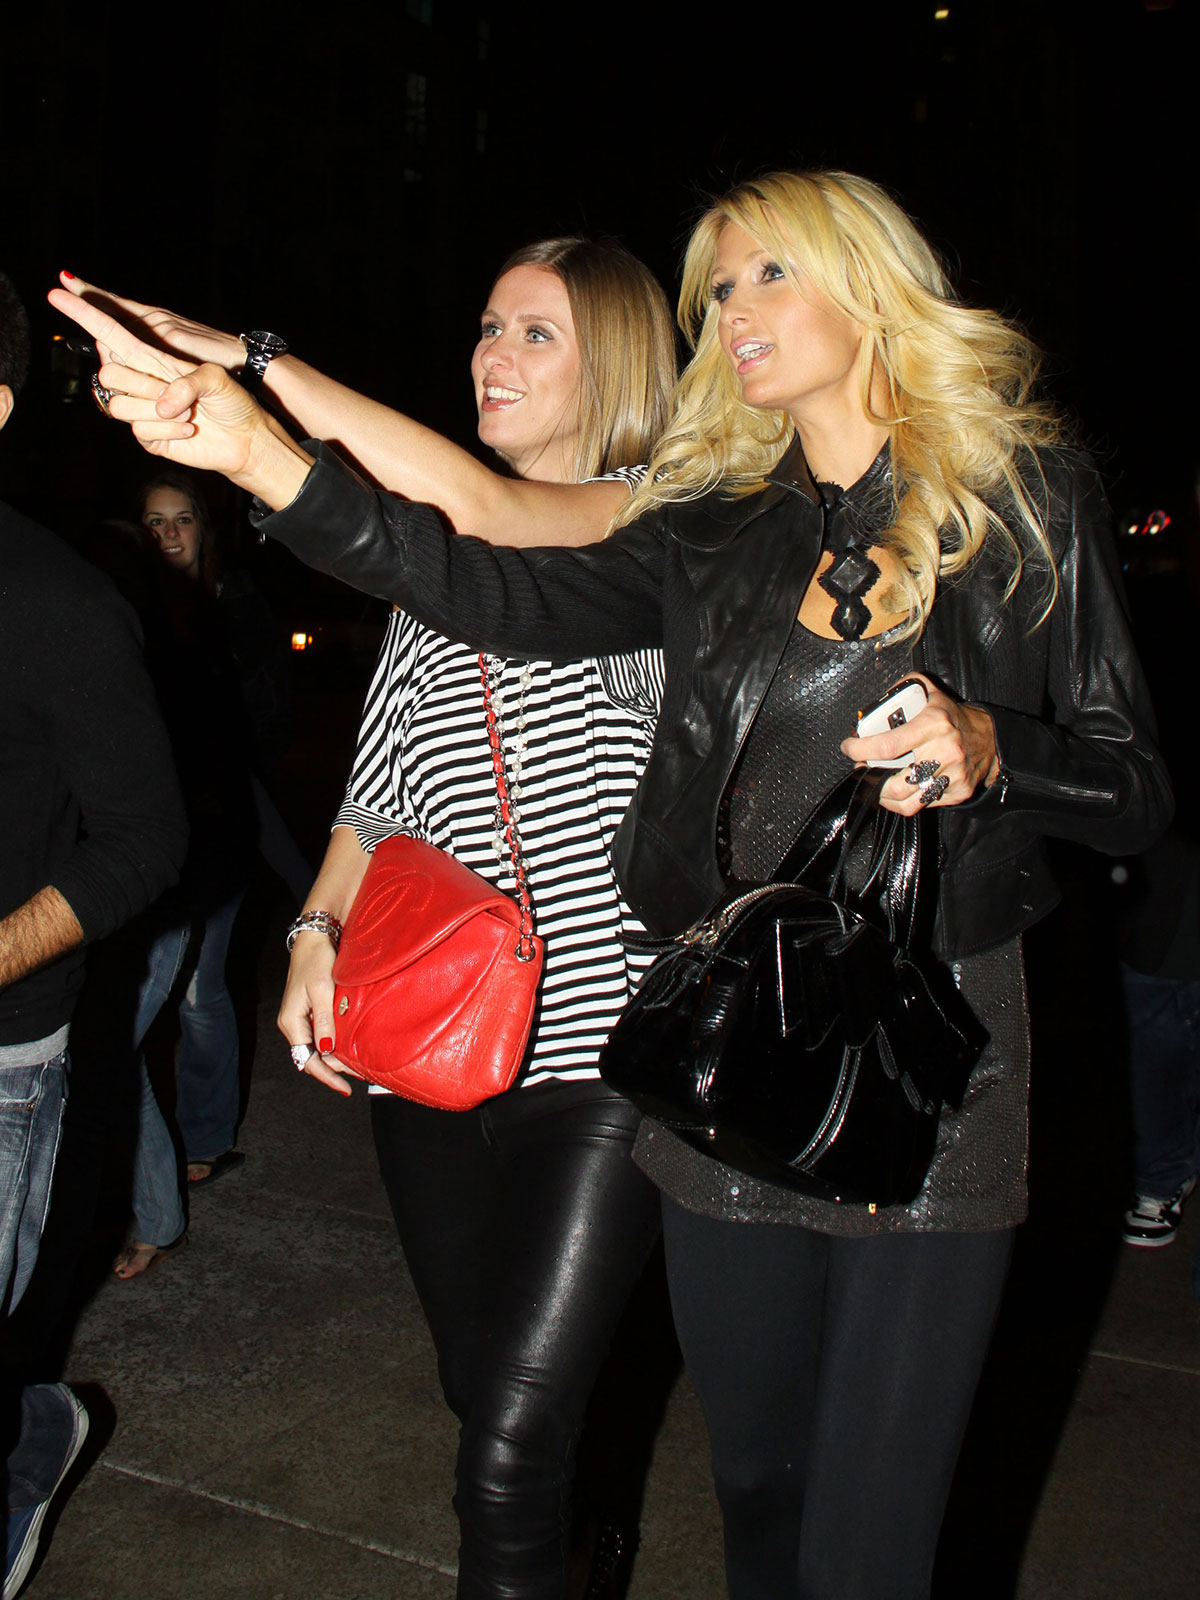 Paris and Nicky Hilton after Charity Event